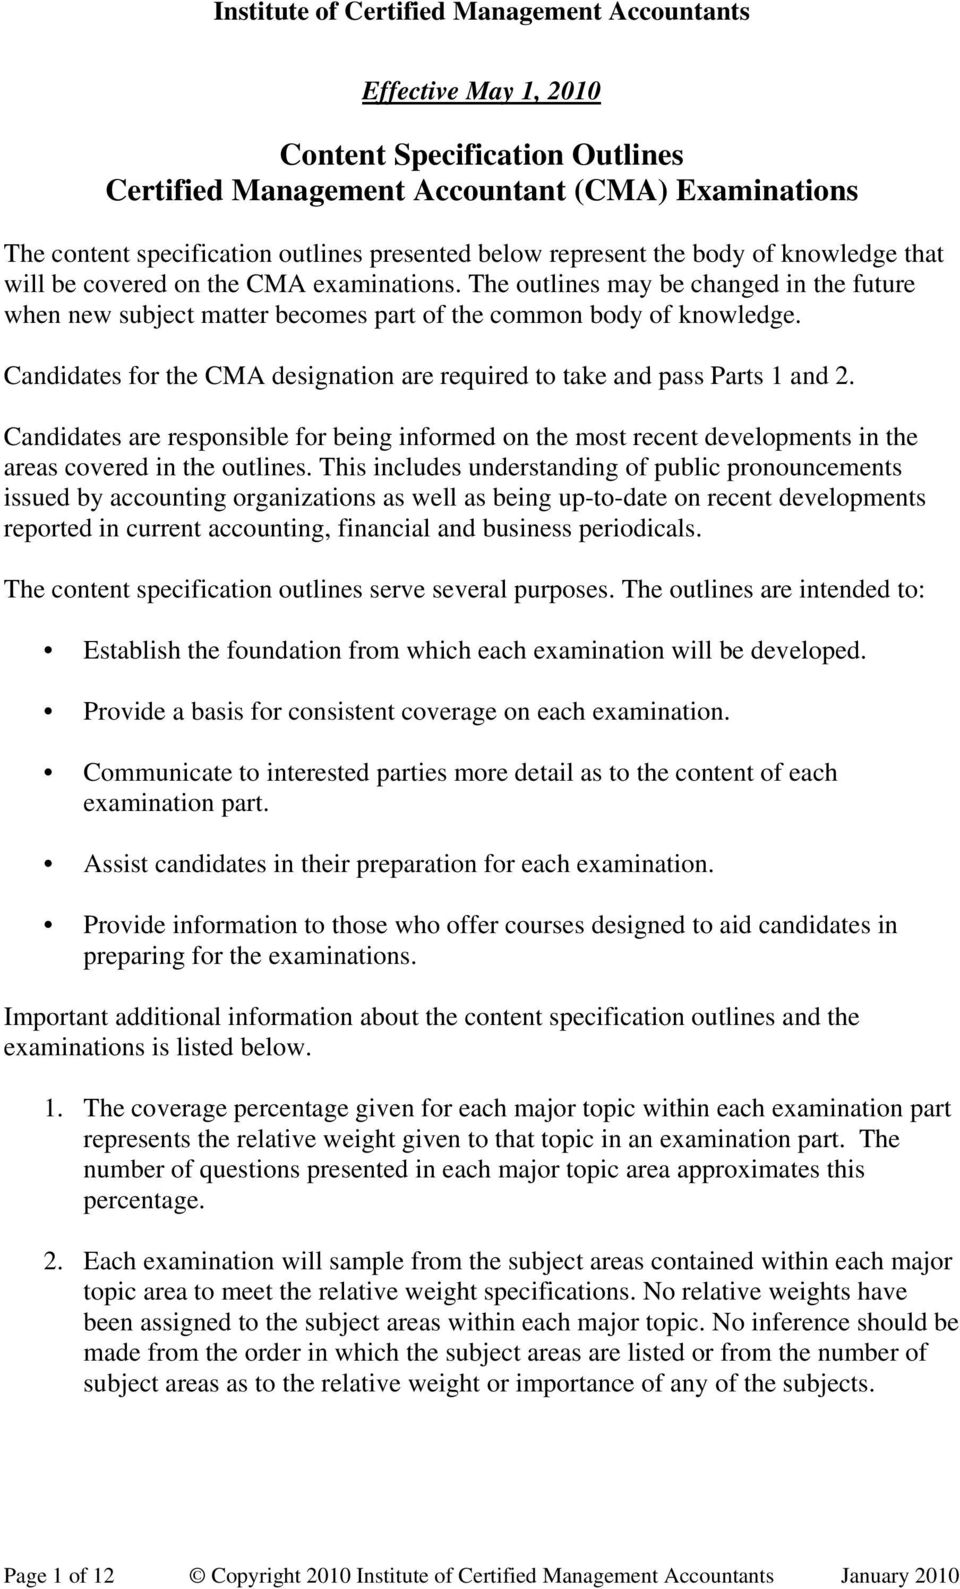 Candidates for the CMA designation are required to take and pass Parts 1 and 2. Candidates are responsible for being informed on the most recent developments in the areas covered in the outlines.